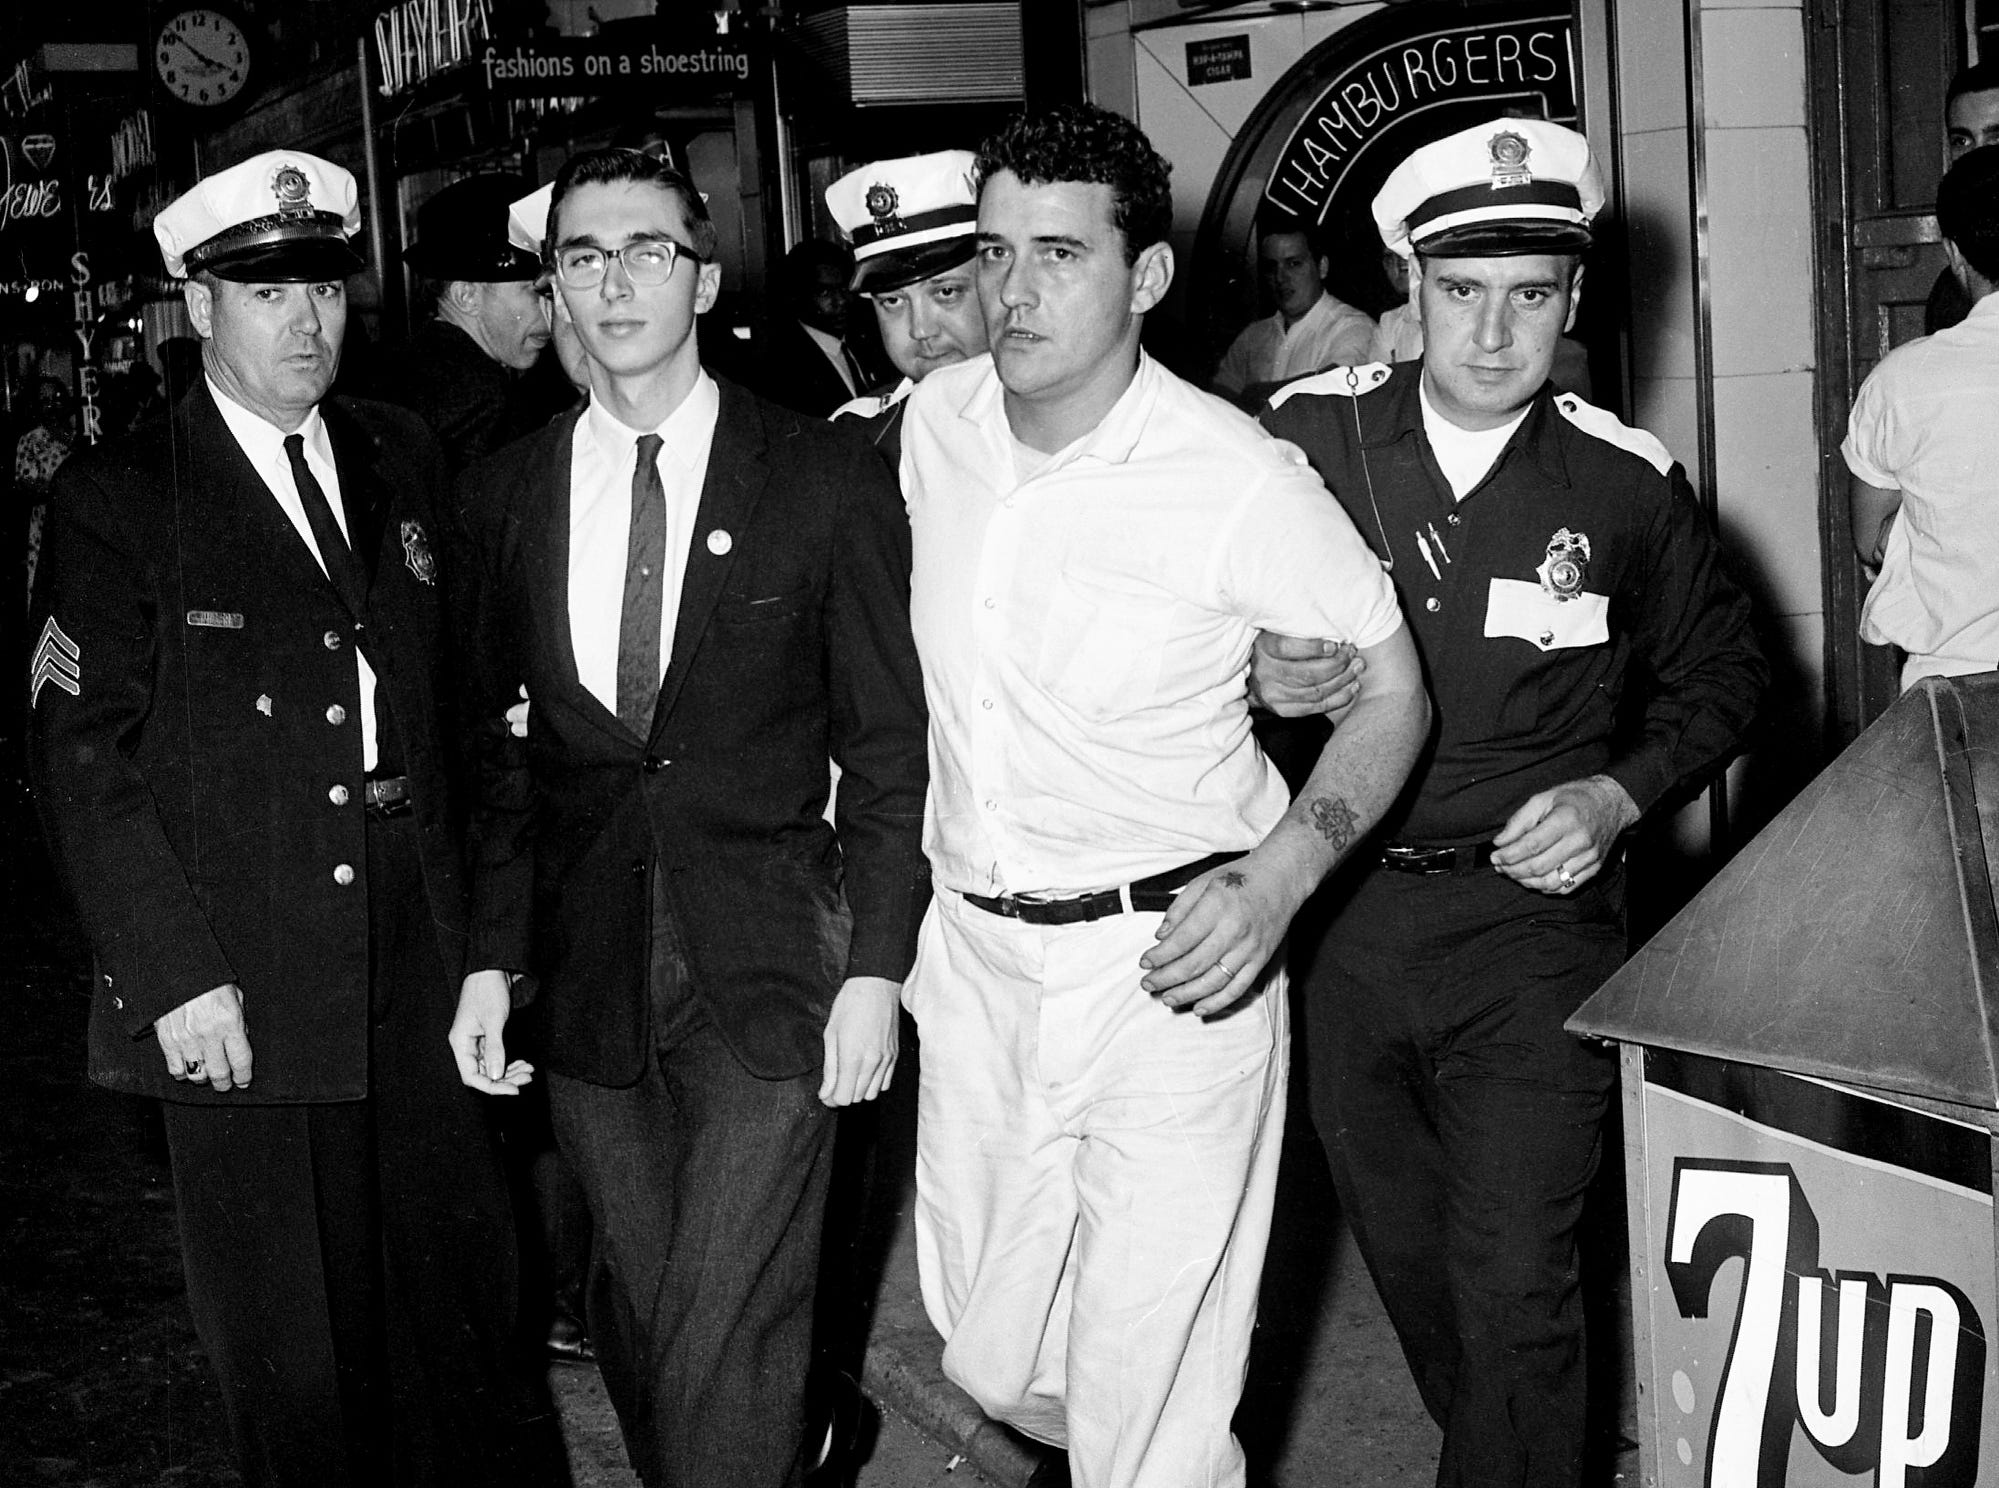 Nashville Police lead away sit-in demonstrator Jan Emmert and restaurant employee Bobby Gene Taylor after they were arrested at the Herschel's Tic Toc restaurant on Church Street on Dec. 1, 1962. Both were released after posting $5 bond each.